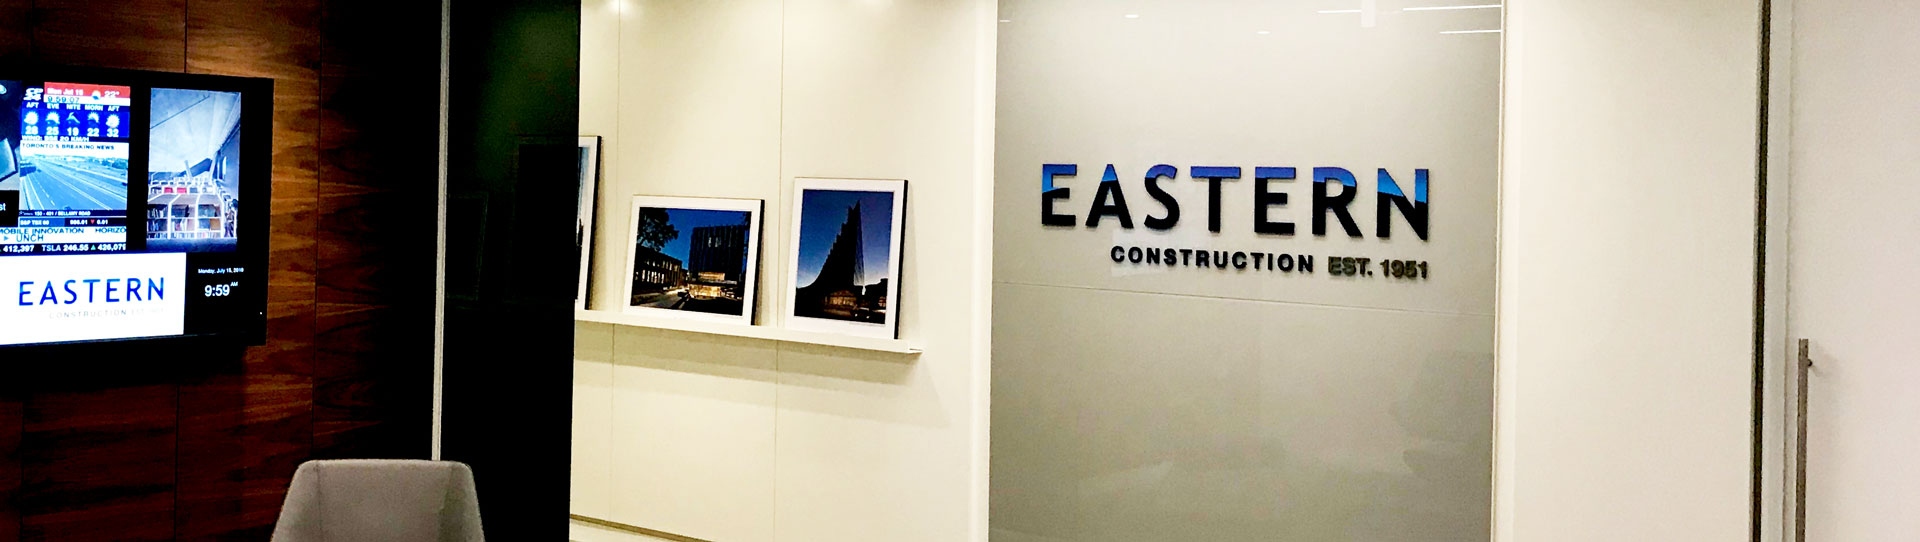 Eastern Construction New Reception Area